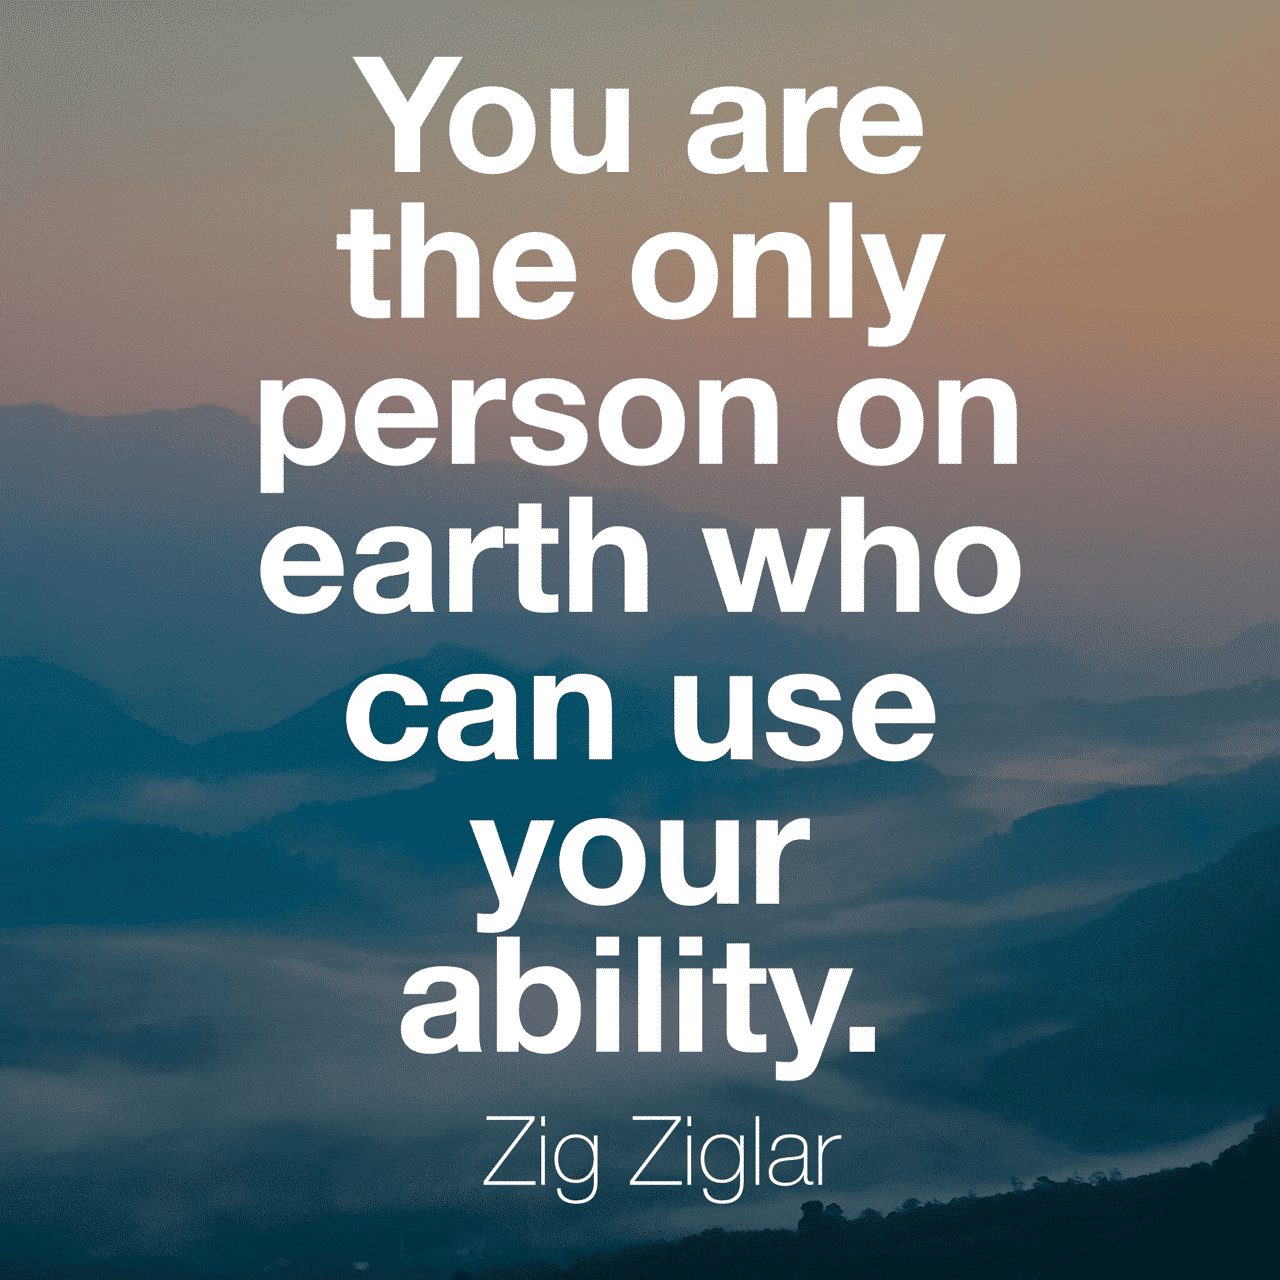 Quotes Zig Ziglar 25 Motivational Zig Ziglar Quotes